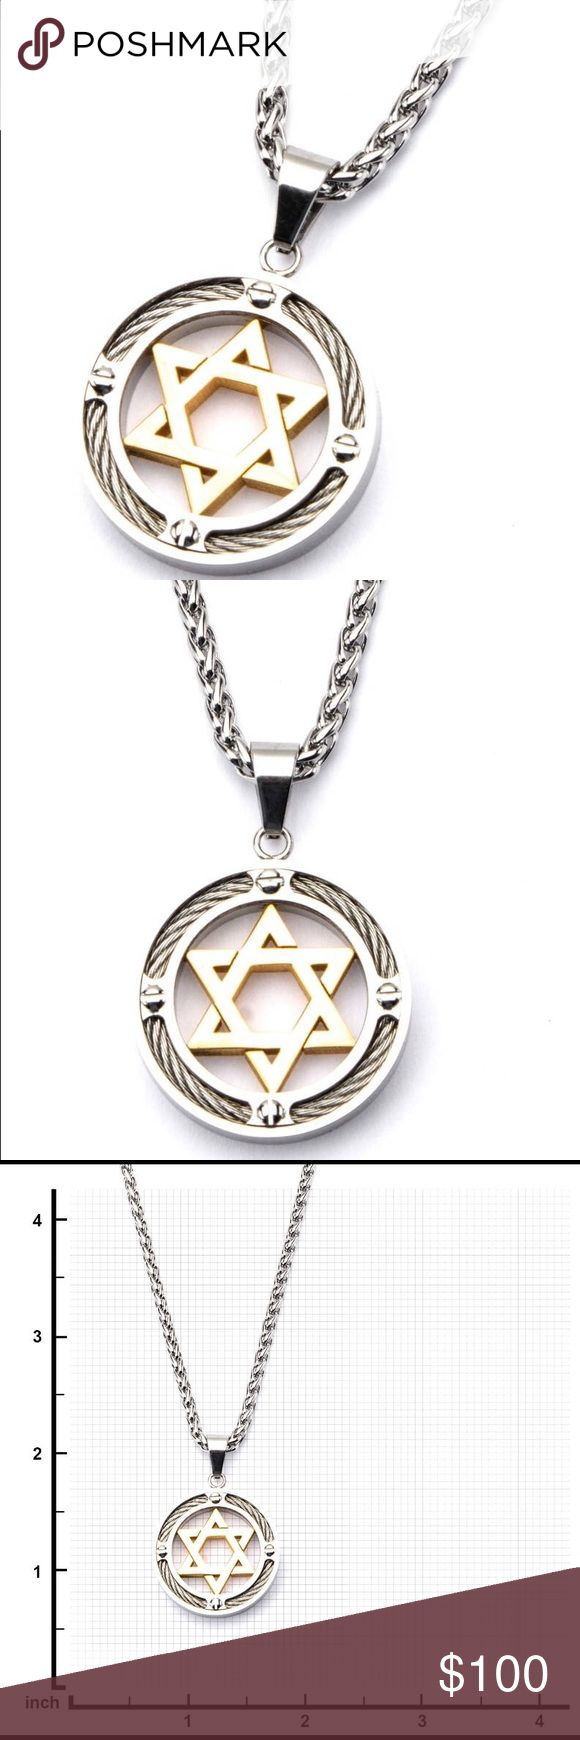 """Steel Gold Star of David Cable Inlayed in Circle Item details Jewish Star, Steel Gold IP Star of David with Cable Inlayed in Circle Pendant .Men's Stainless Steel Gold IP Star of David with Cable Inlayed in Circle Pendant with 20"""" Chain.                                                                         Item overview Handmade item Primary color: Silver Materials: sterling silver Accessories Jewelry"""